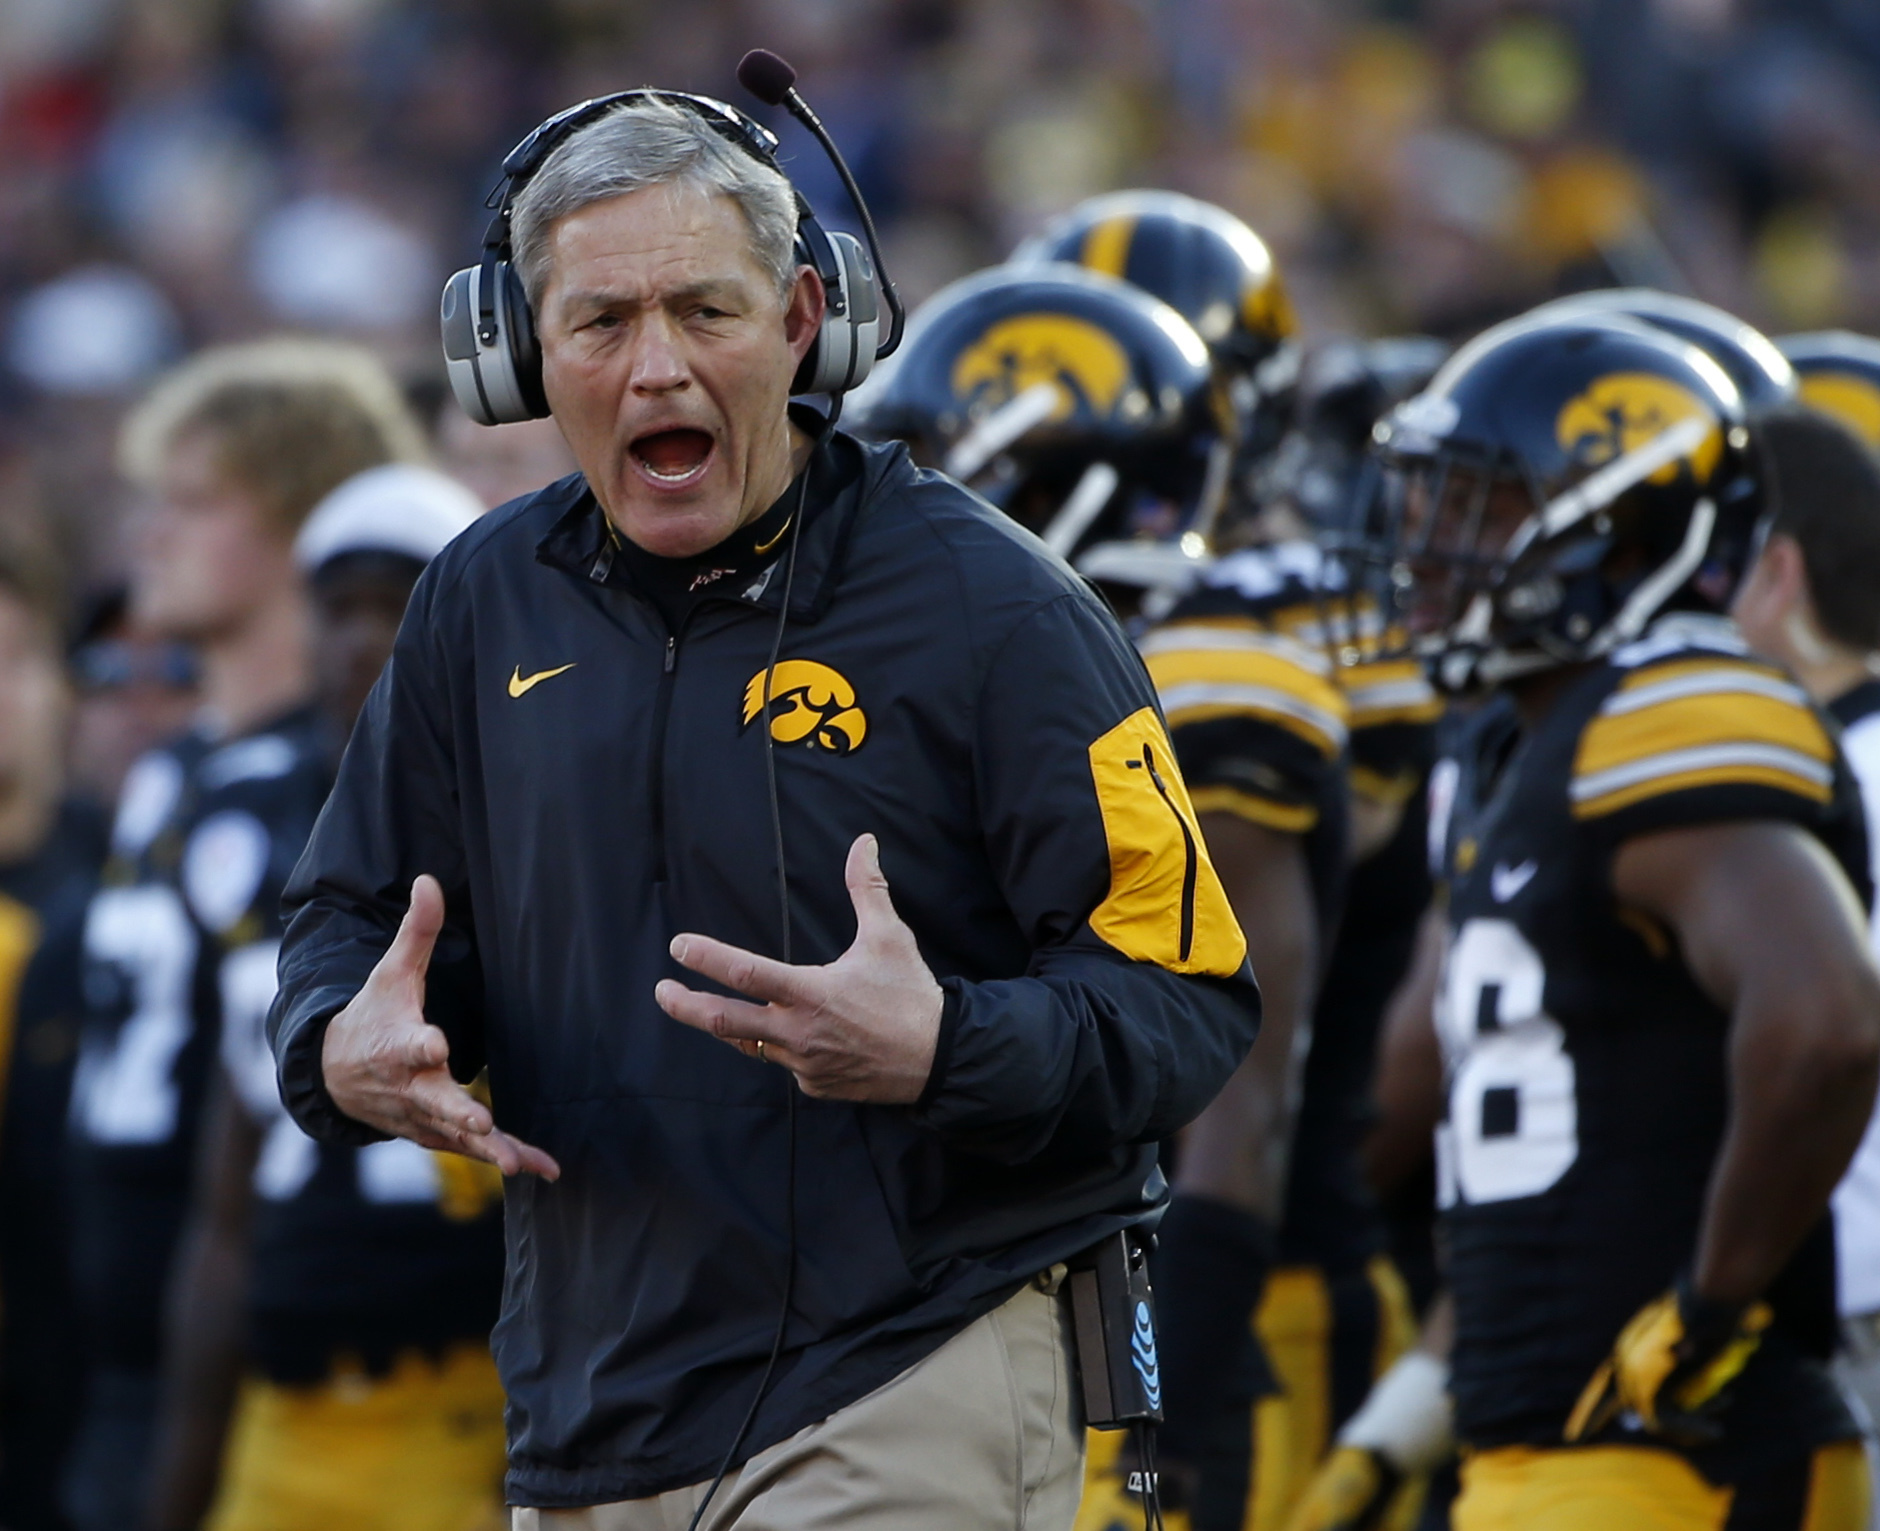 FILE - In this Jan. 1, 2016, file photo, Iowa coach Kirk Ferentz reacts as Stanford running back Christian McCaffrey scores during the first half of the Rose Bowl NCAA college football game in Pasadena, Calif. Iowas 12-0 start last season led some to labe